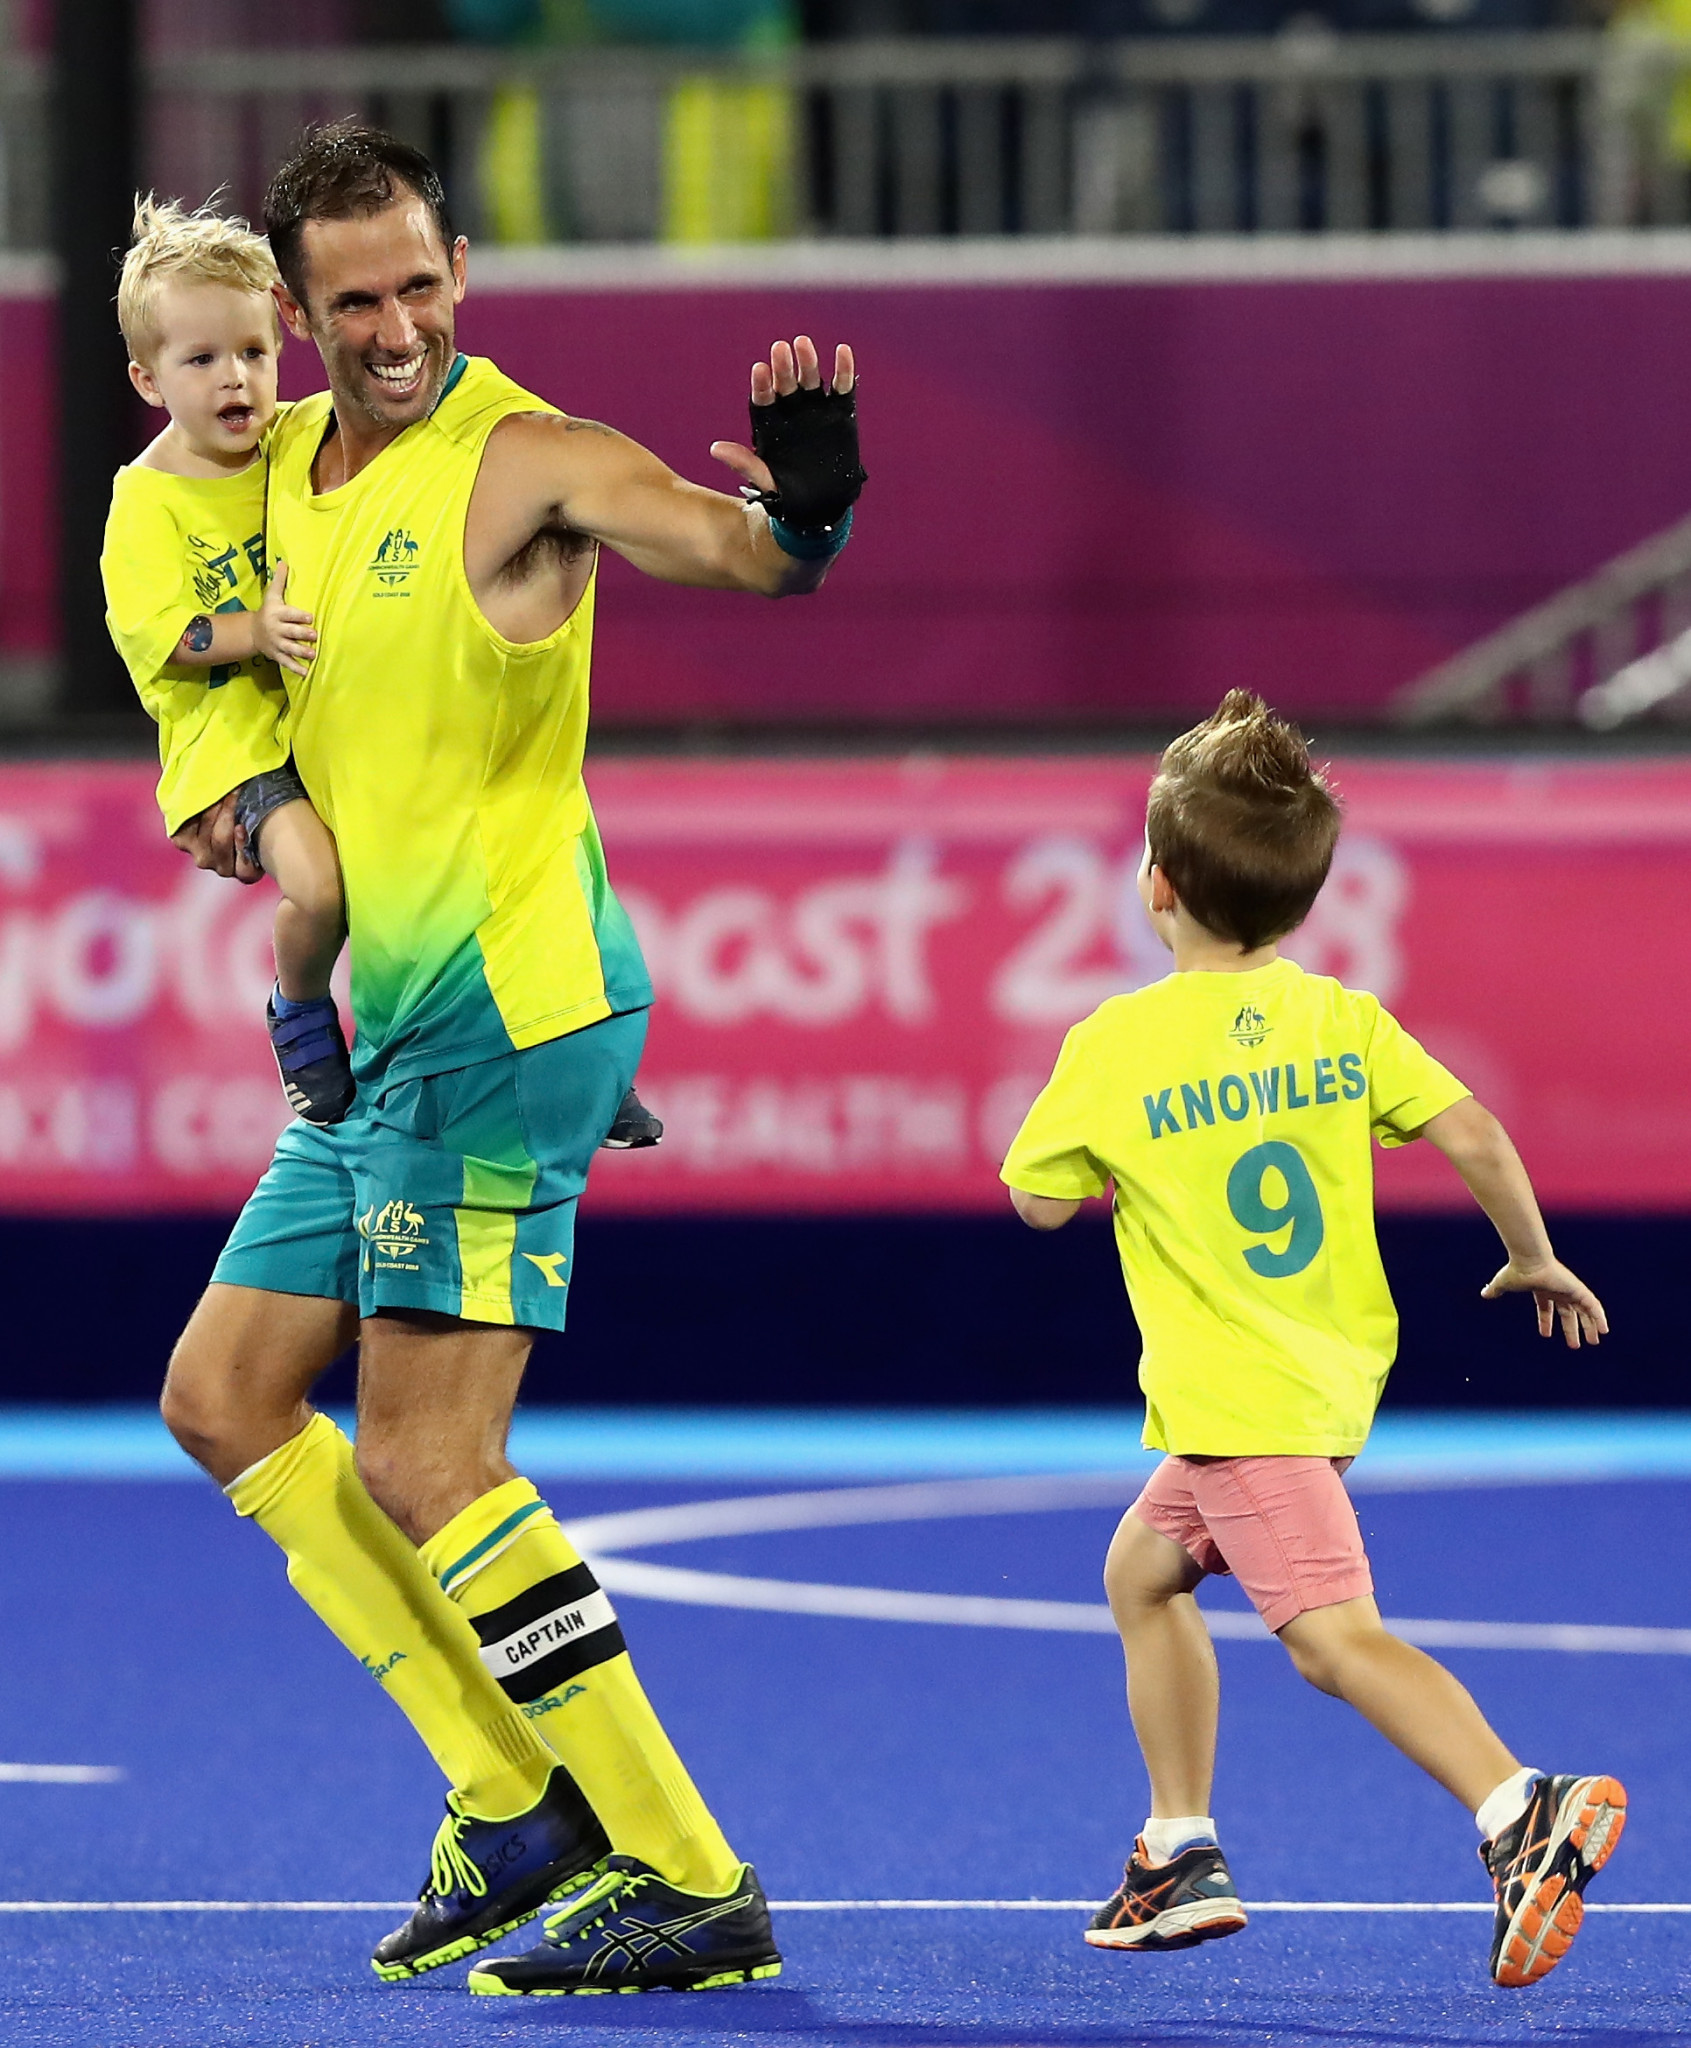 Retiring legend Knowles enjoys perfect end to career as Australia beat New Zealand to men's hockey gold at Gold Coast 2018